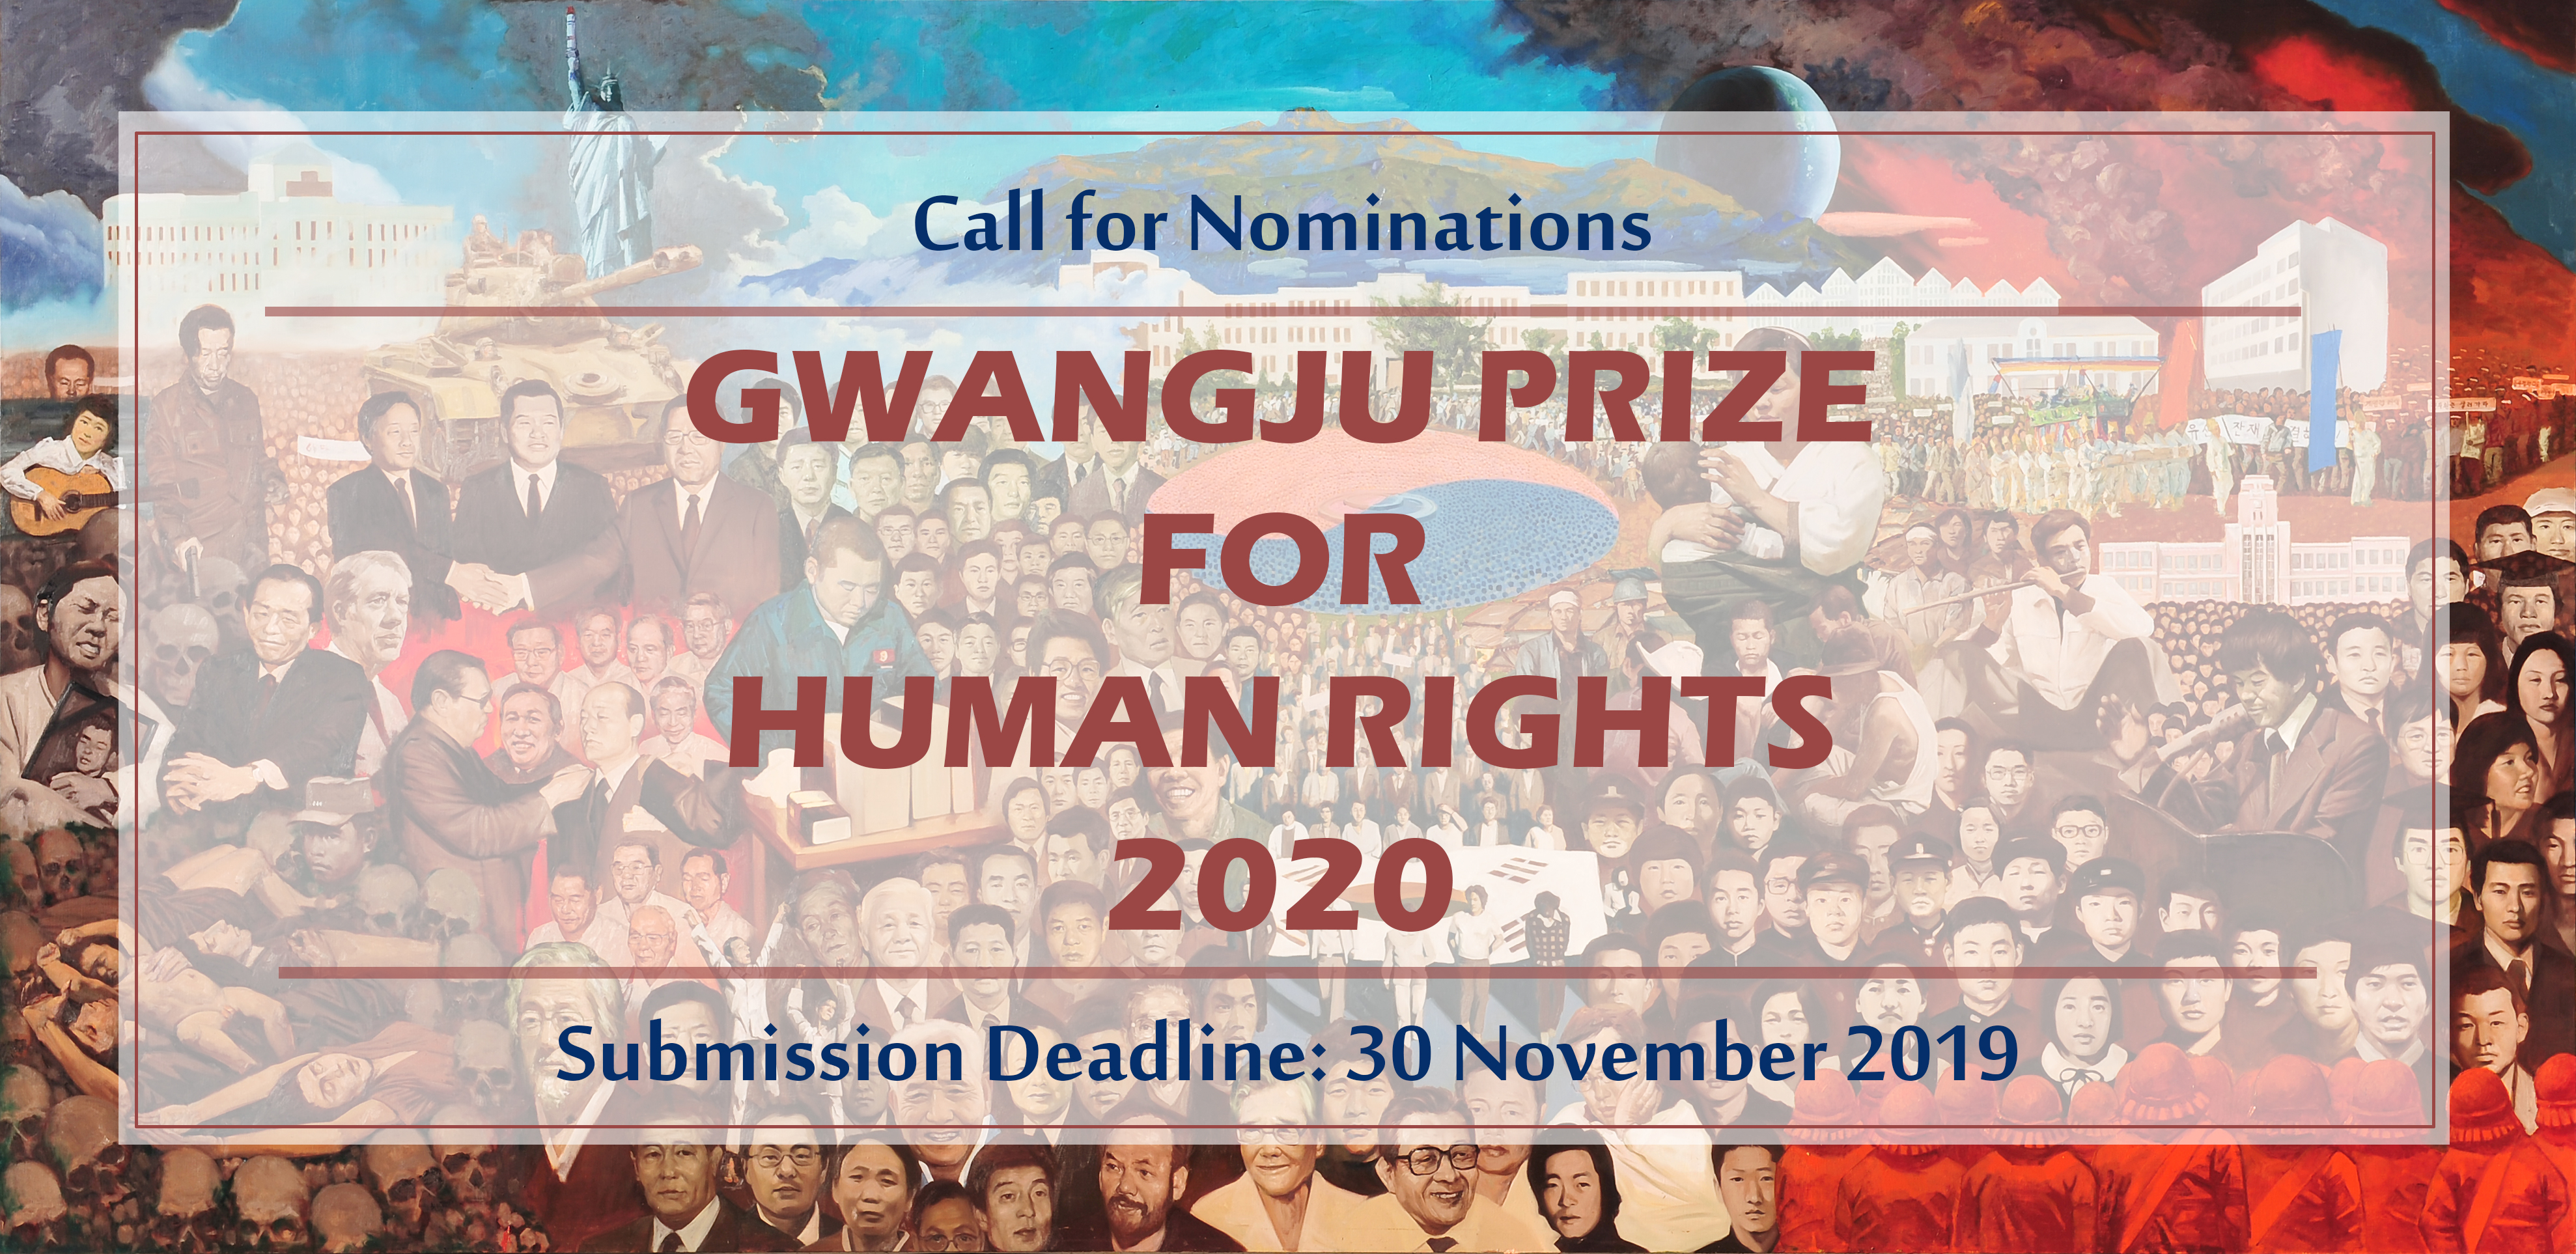 Call for Nominations: The Gwangju Prize for Human Rights 2020 (Award of $50,000)